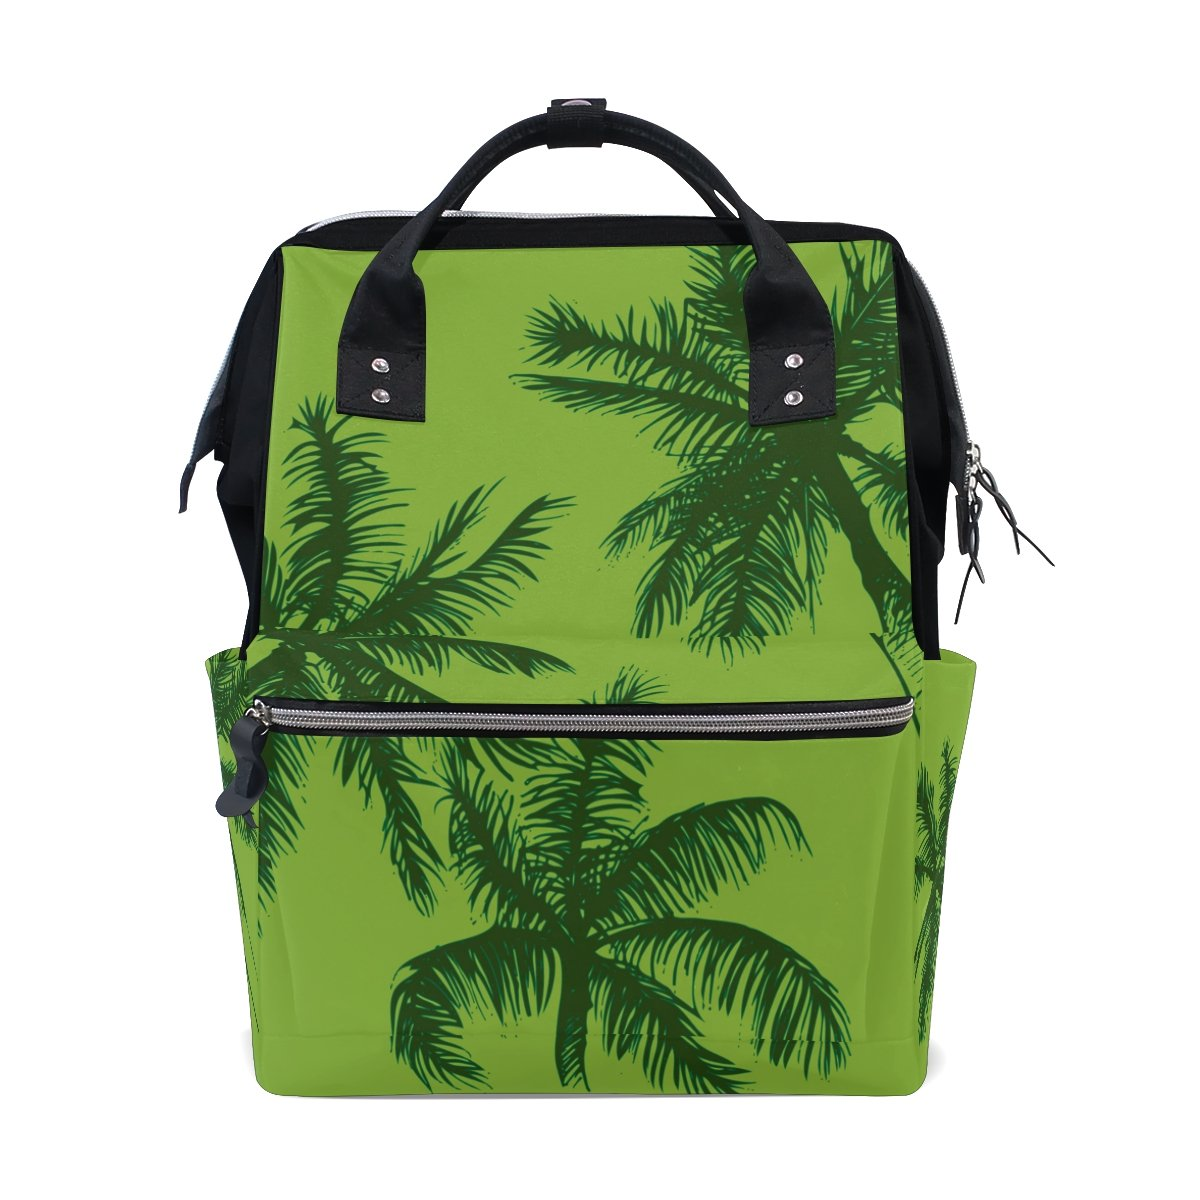 JSTeLノートパソコンカレッジバッグ学生旅行Palm Trees and Tropical Leaves学校バックパックショルダートートバッグ   B078MXGQLB